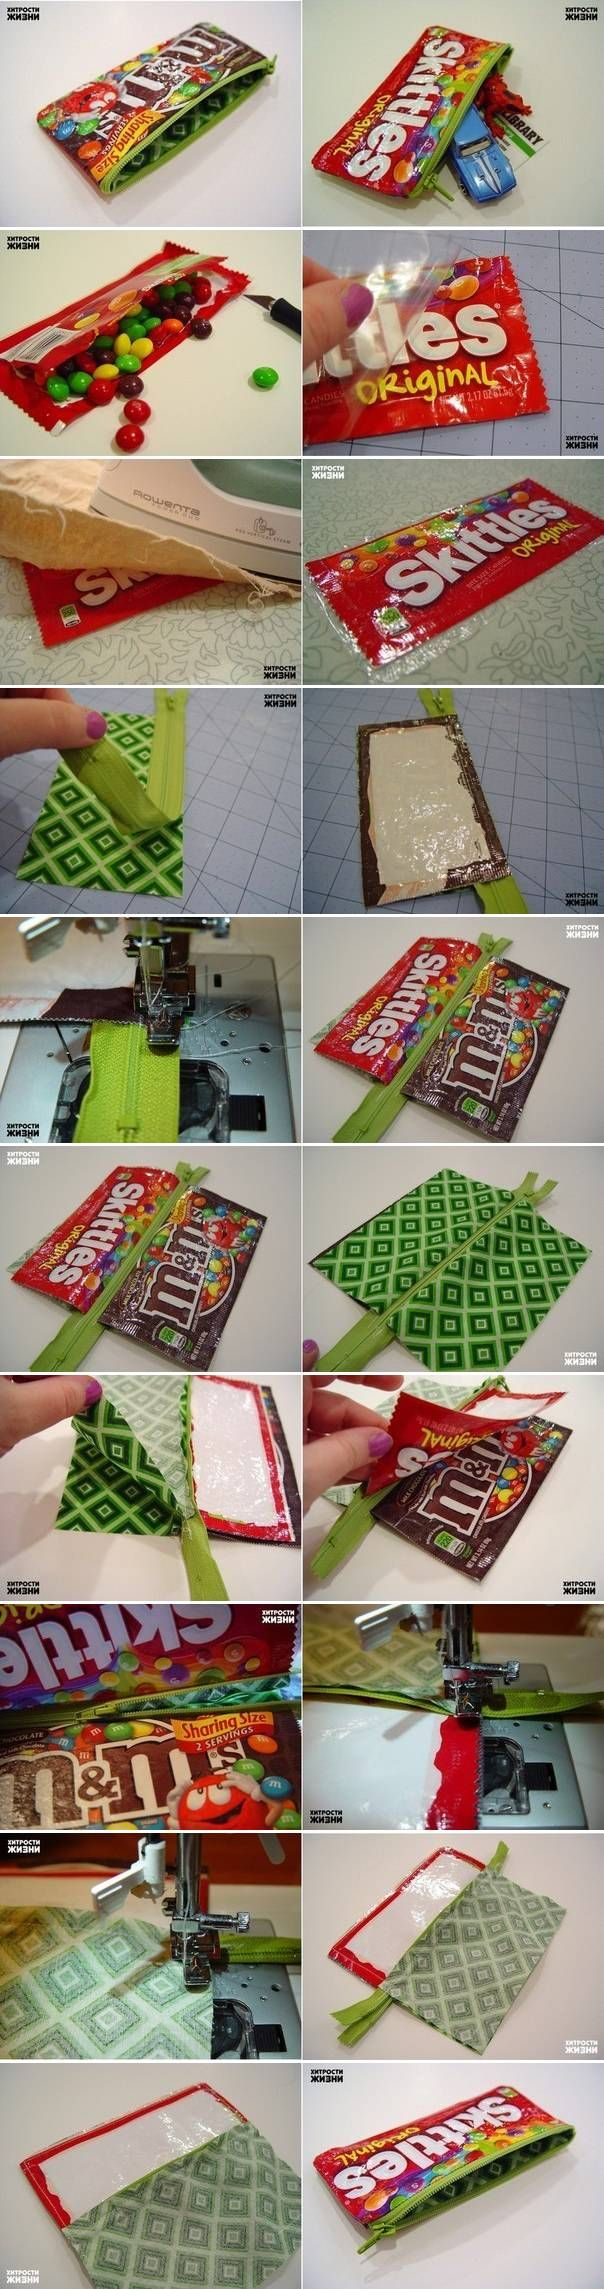 DIY Back to School Candy Pencil Case-very cute #CANDY, #CASE, #DIY, #SEWING #CRAFT, #IDEAS, #PROJECTS, #PENCIL,